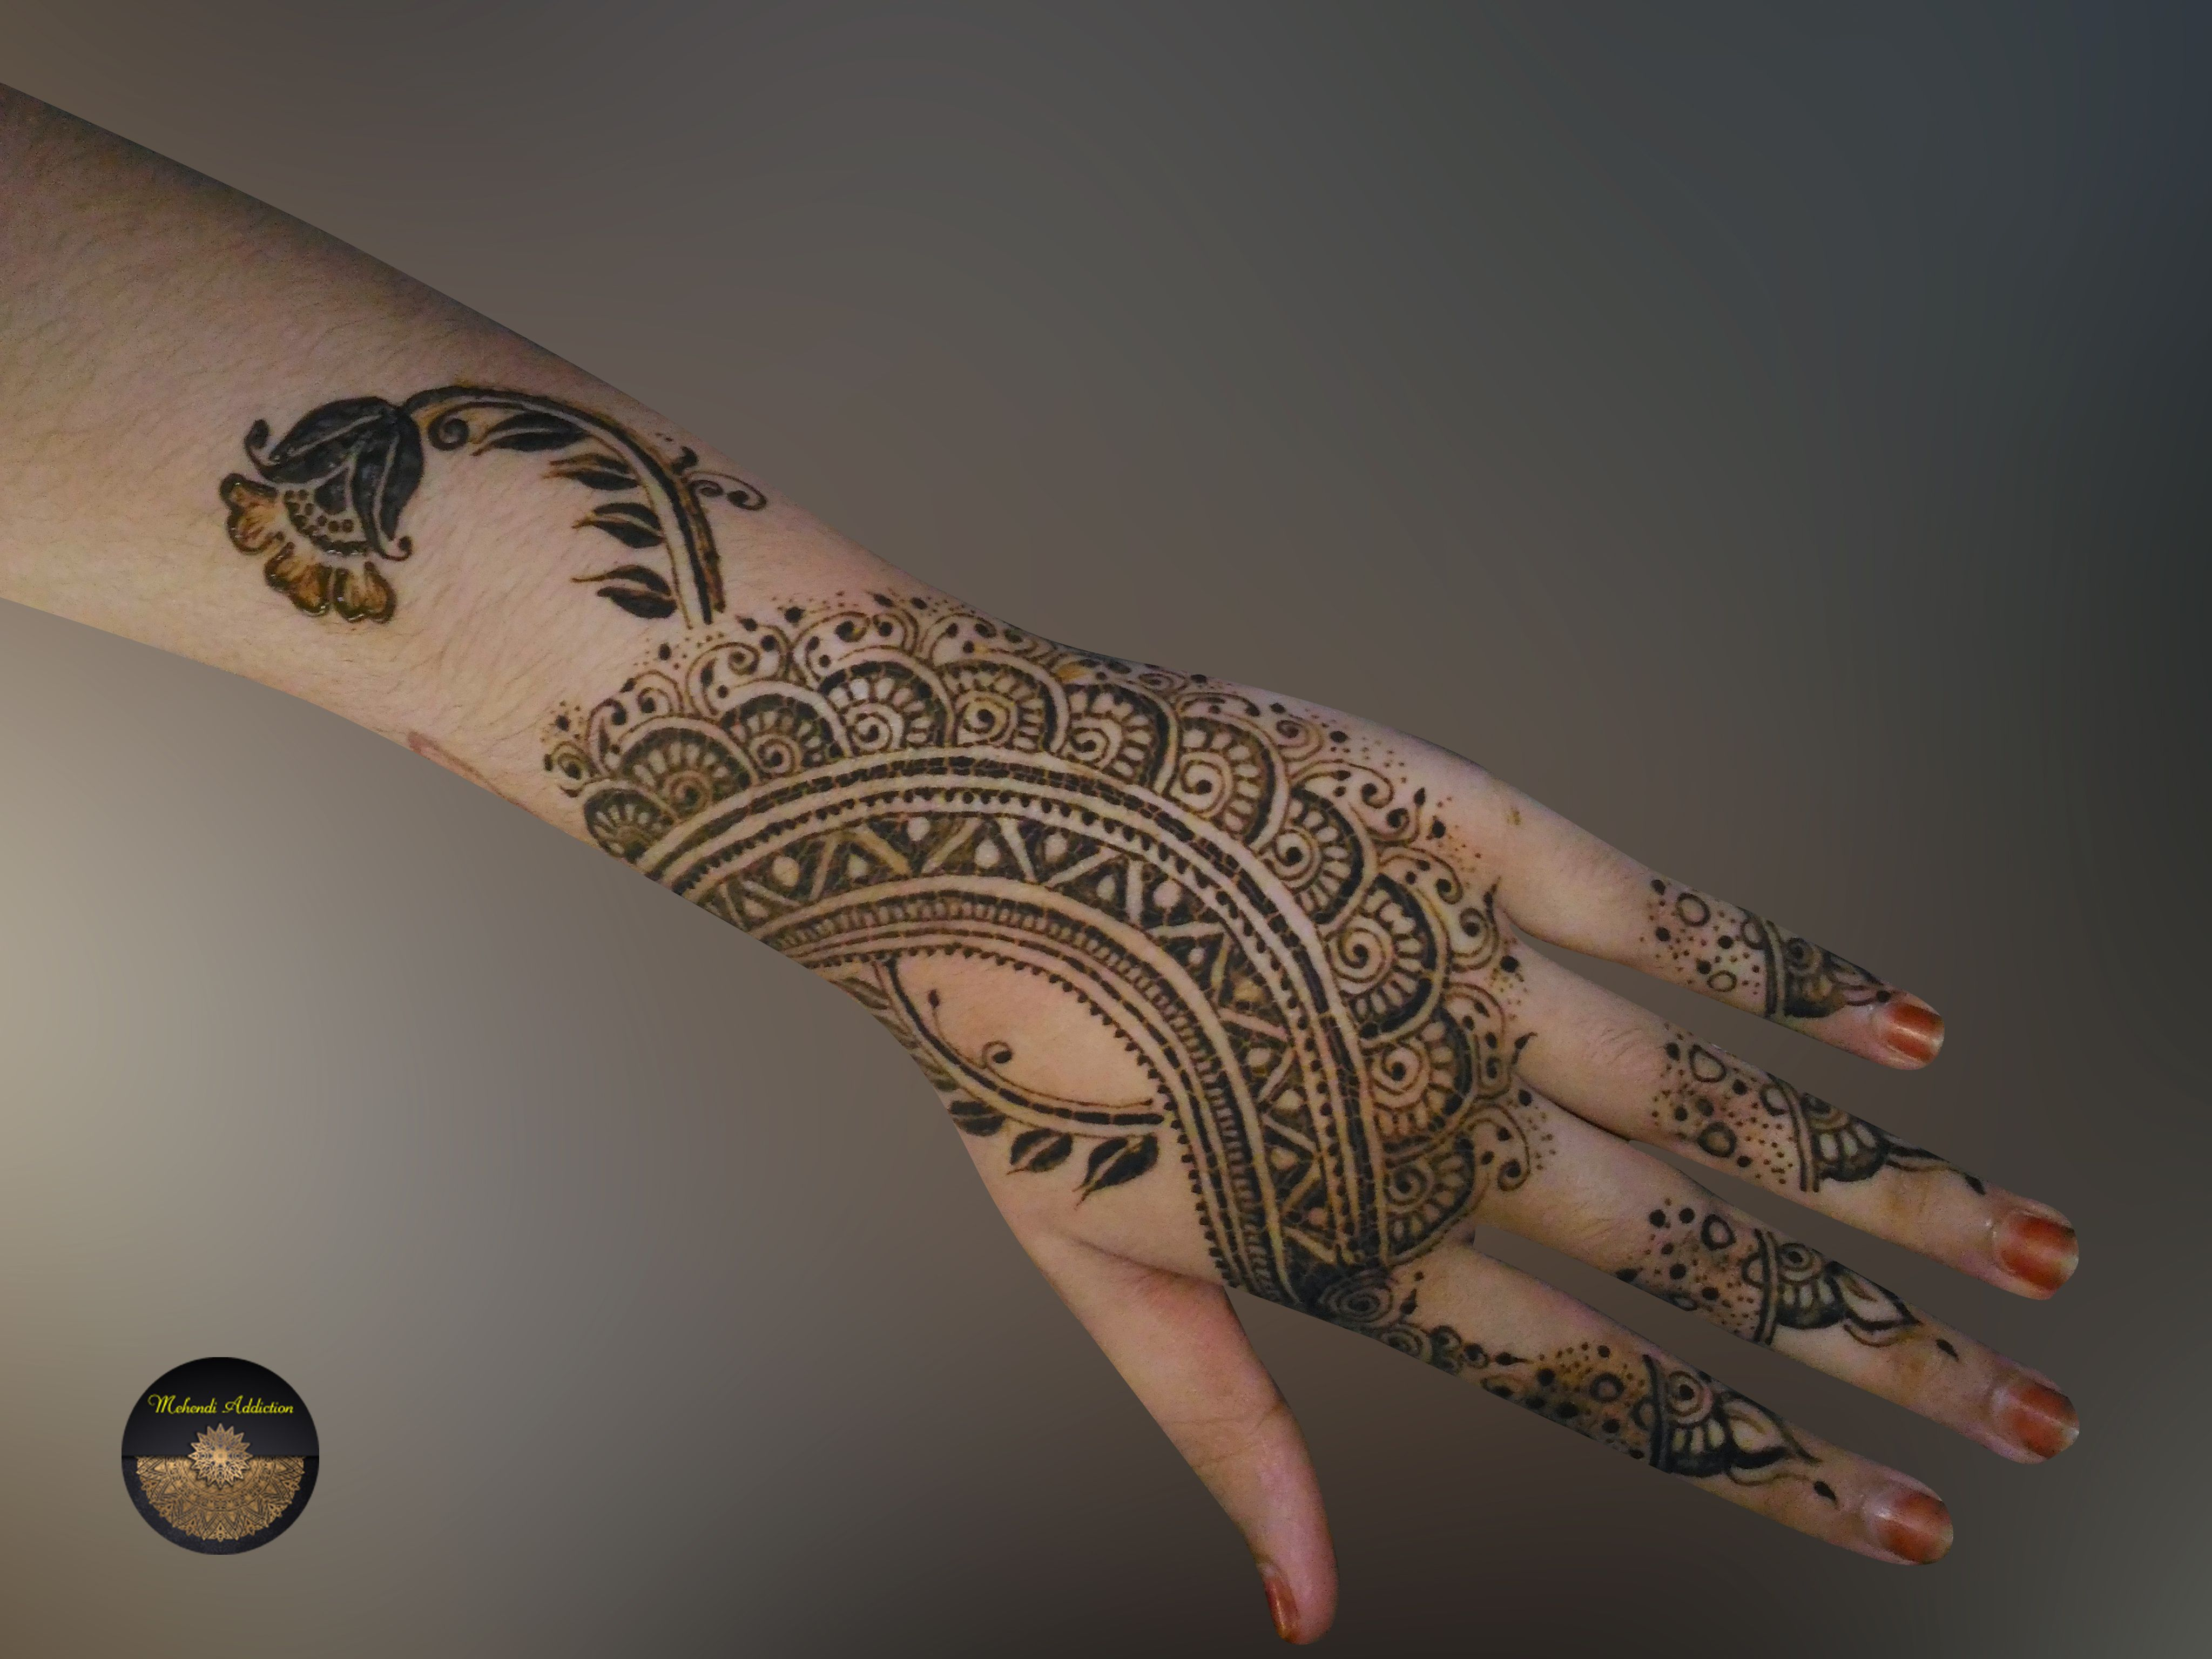 It's tough to draw a tiny thin line with kaveri because it is not soft like the organic mehndi. But hope it was good. #mehendi_addiction #mehndi #mehndidesigns #mehndioutfits #mehndibride #mehndiartist #mehndibridal #mehndisemibridal #mehndidecor